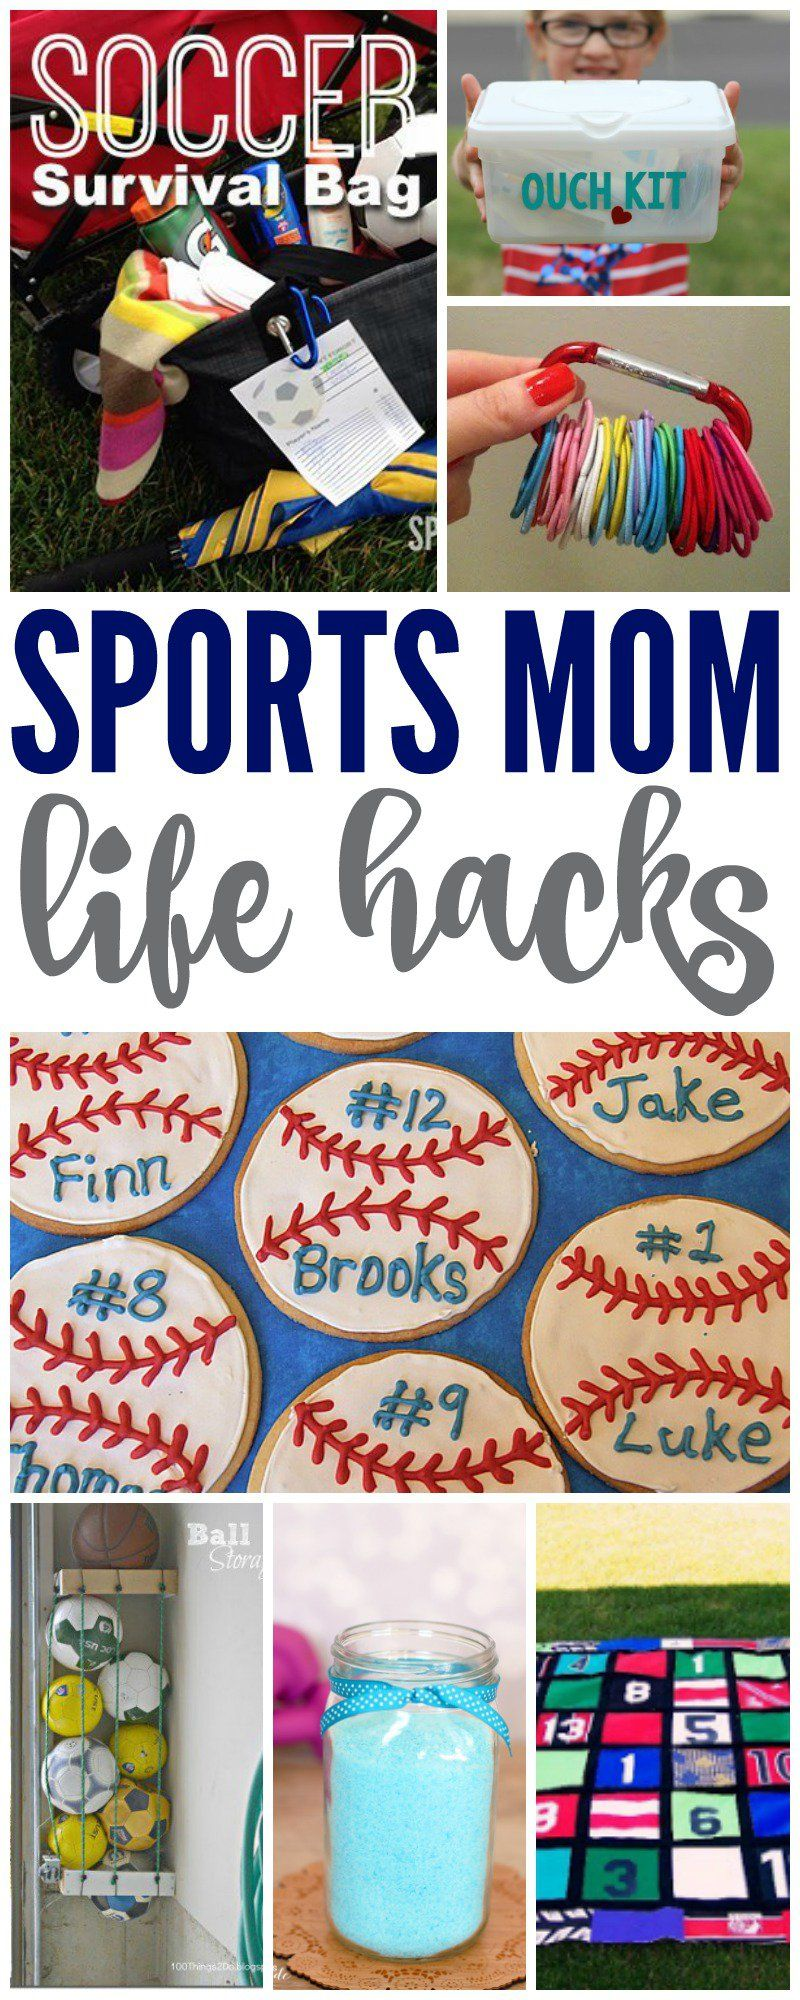 Life Hacks For Moms I Have Some Awesome Genius Hacks For Sports Moms Today If Youre